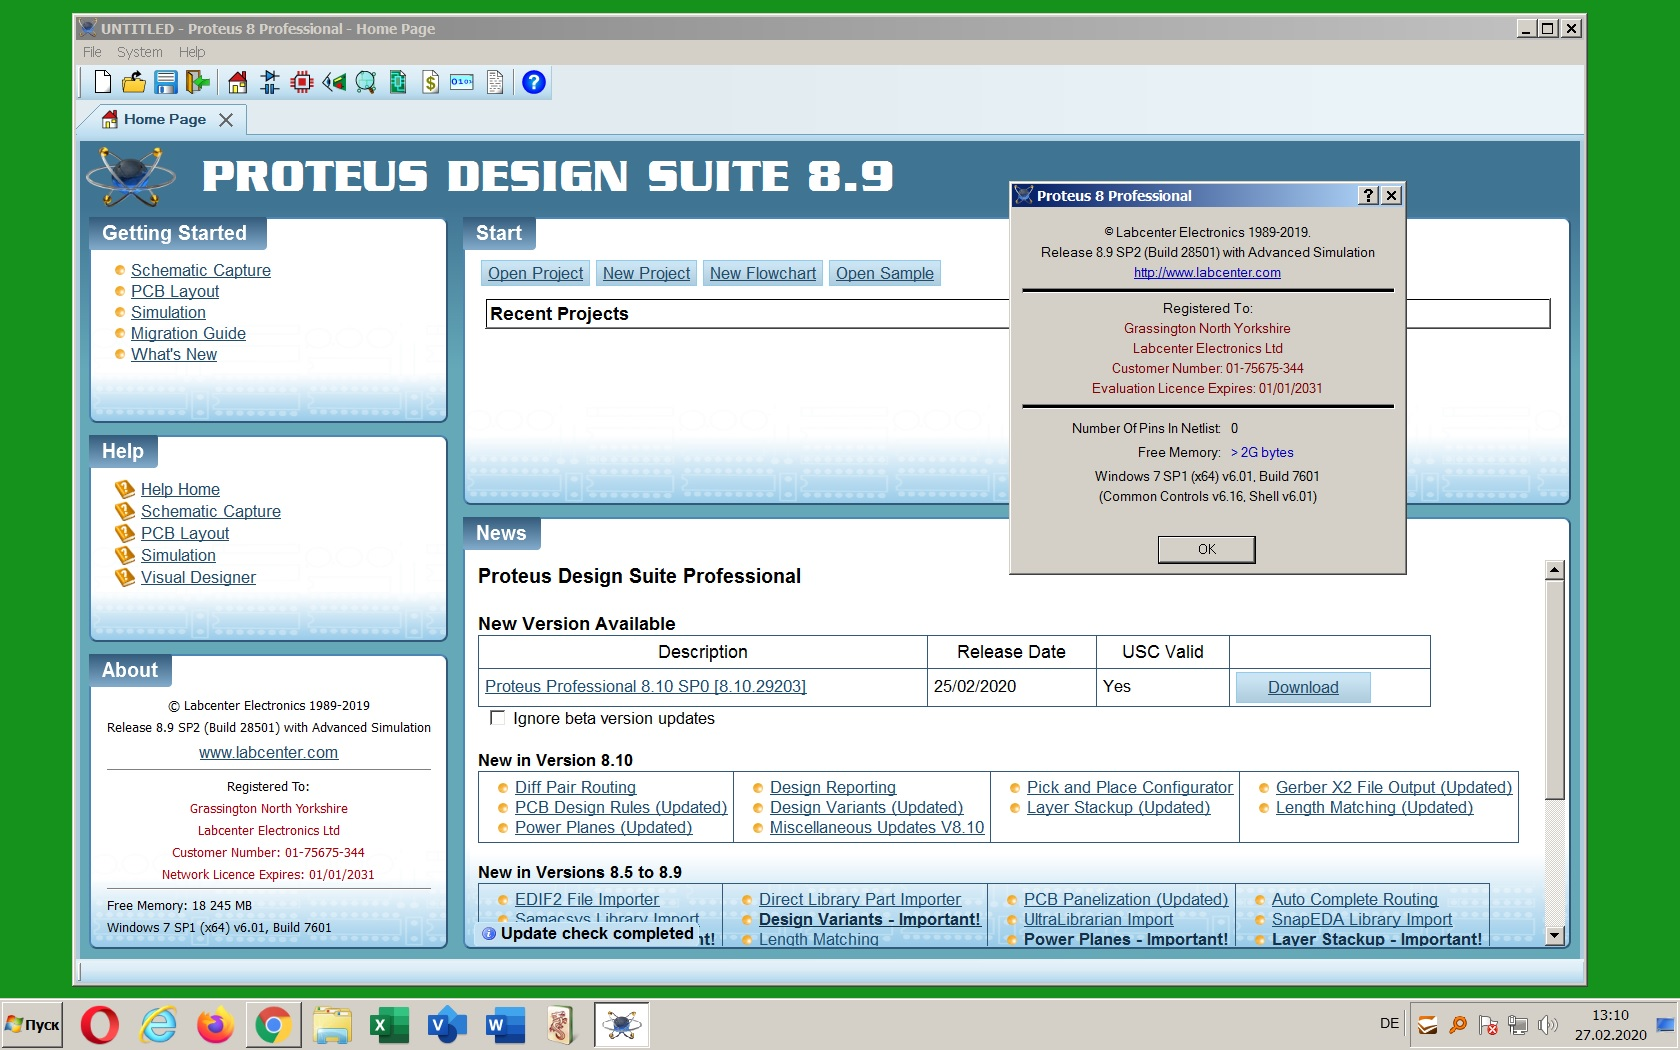 Download Proteus Professional 8 9 Sp2 Build 28501 Full License Forever Click To Download Full Softs Tips Ebook